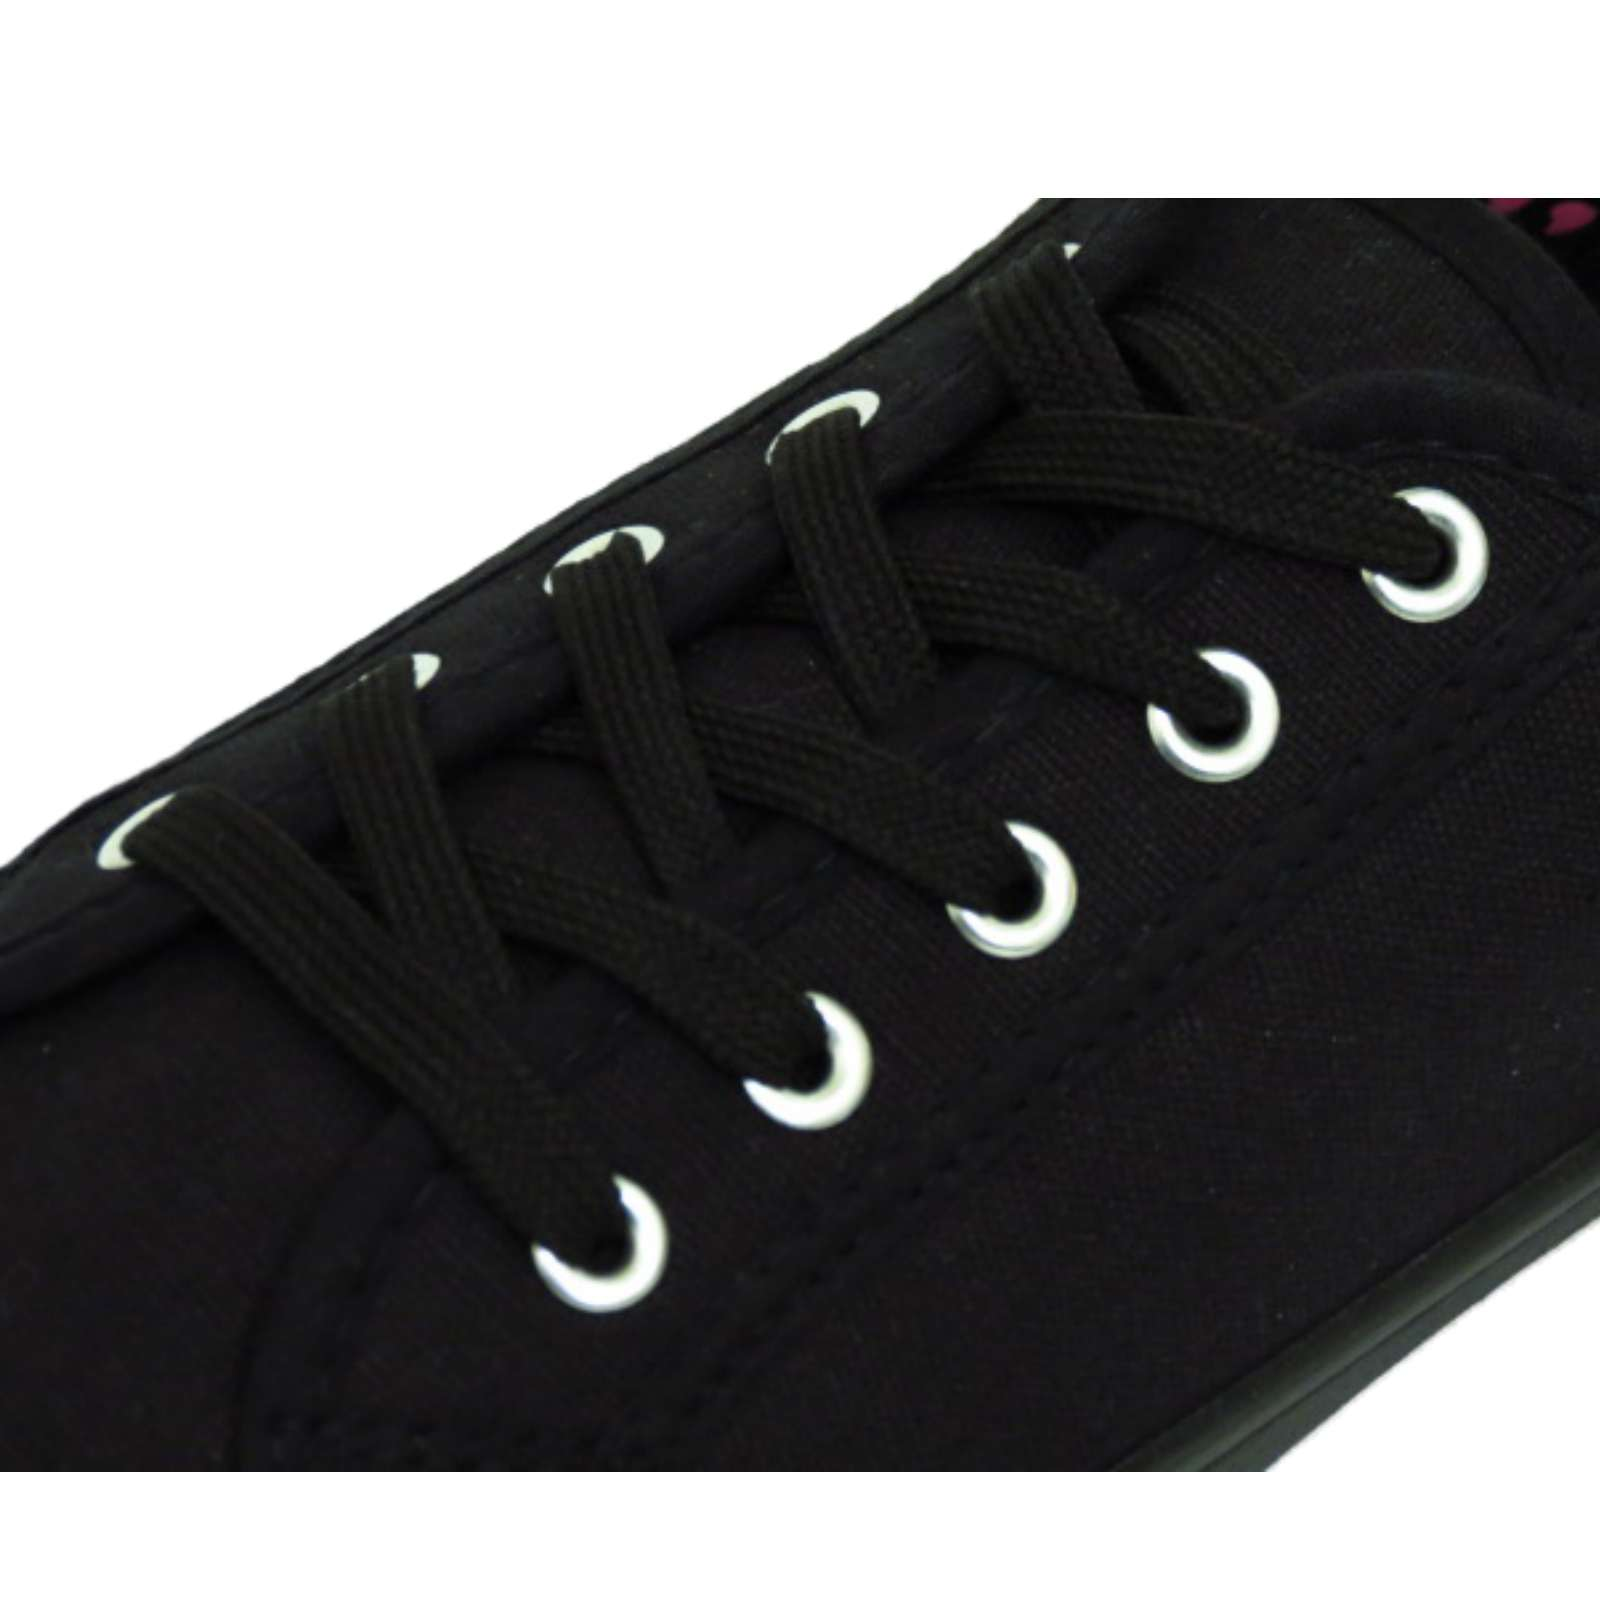 LADIES-BLACK-CANVAS-FLAT-LACE-UP-TRAINER-PLIMSOLL-PUMPS-CASUAL-SHOES-SIZES-3-9 thumbnail 8